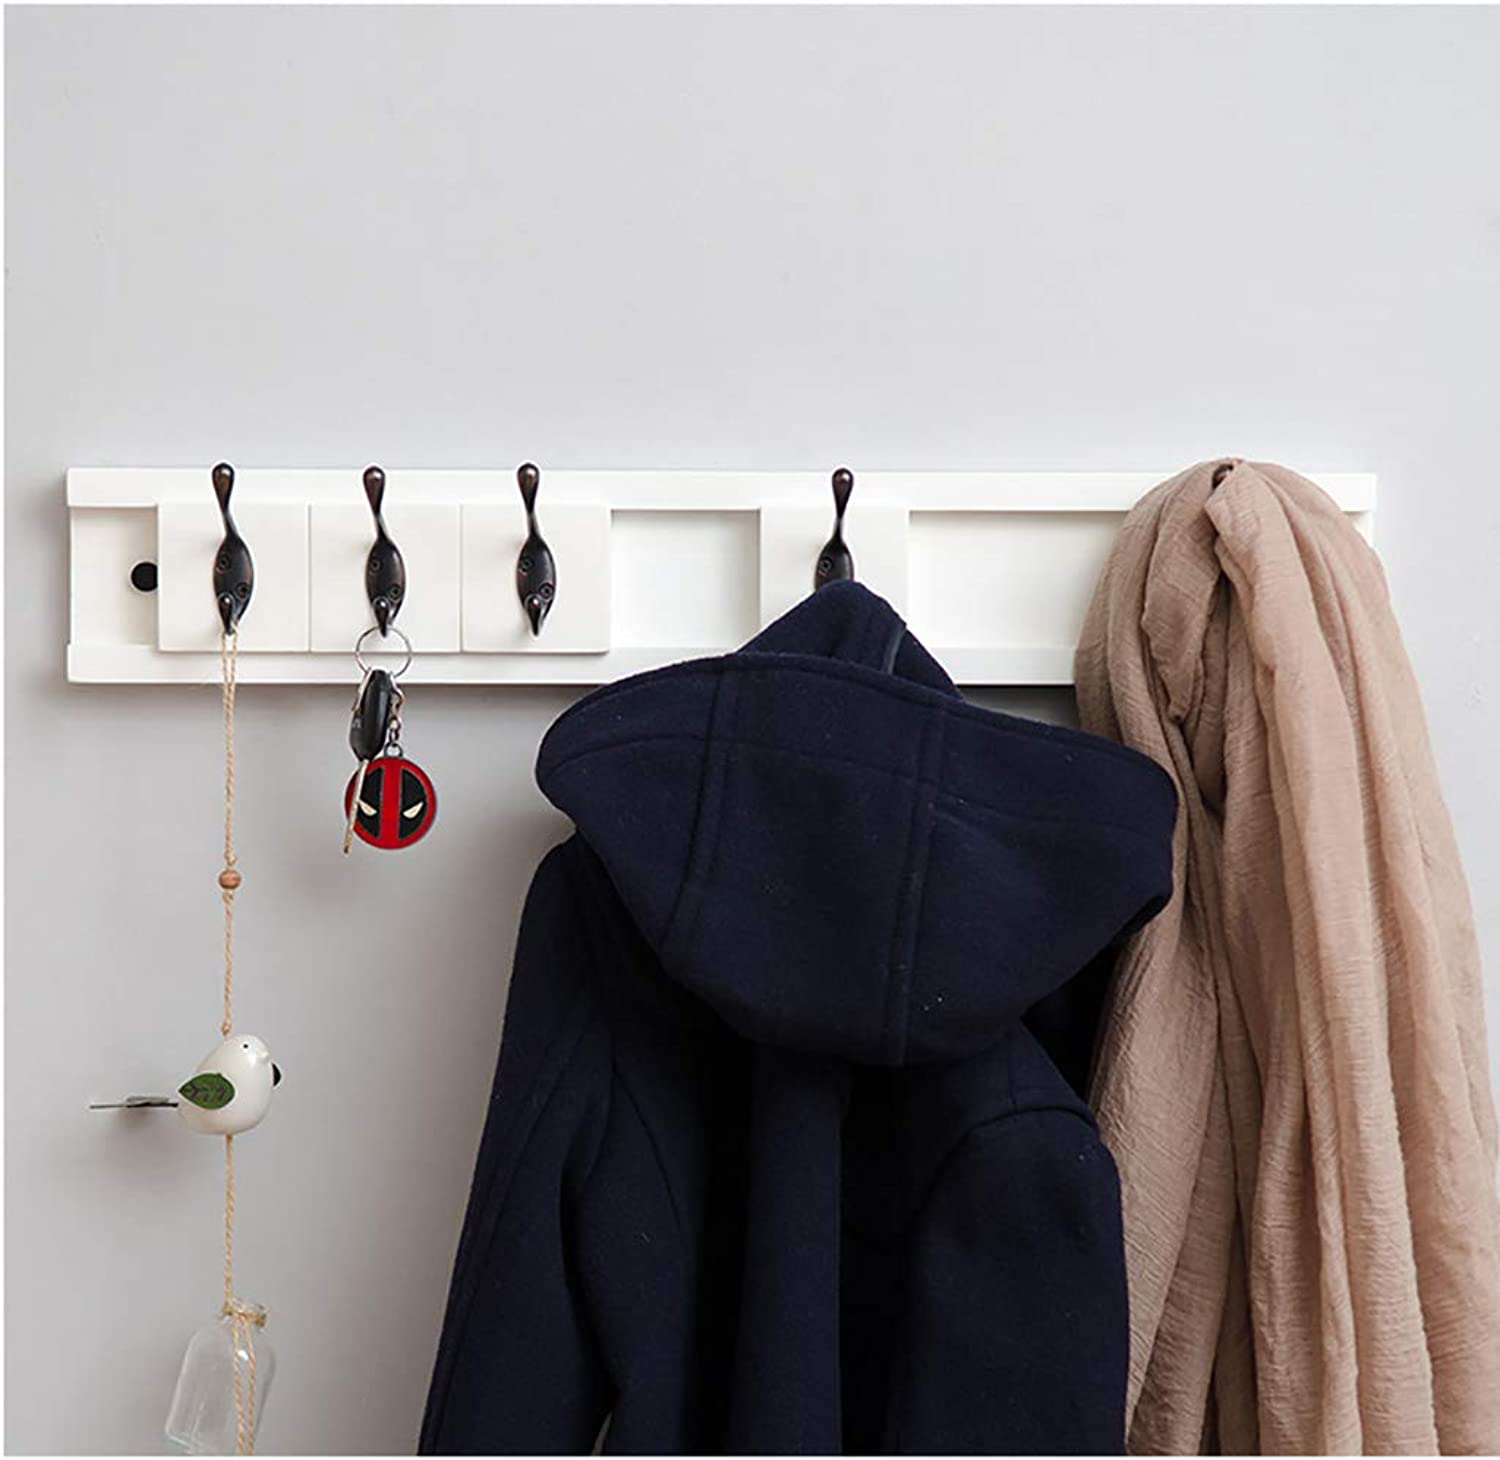 Bamboo Wall-Mounted Coat Rack,Wall Storage Shelf with Removable Hooks (White) (Size   48.3cm)